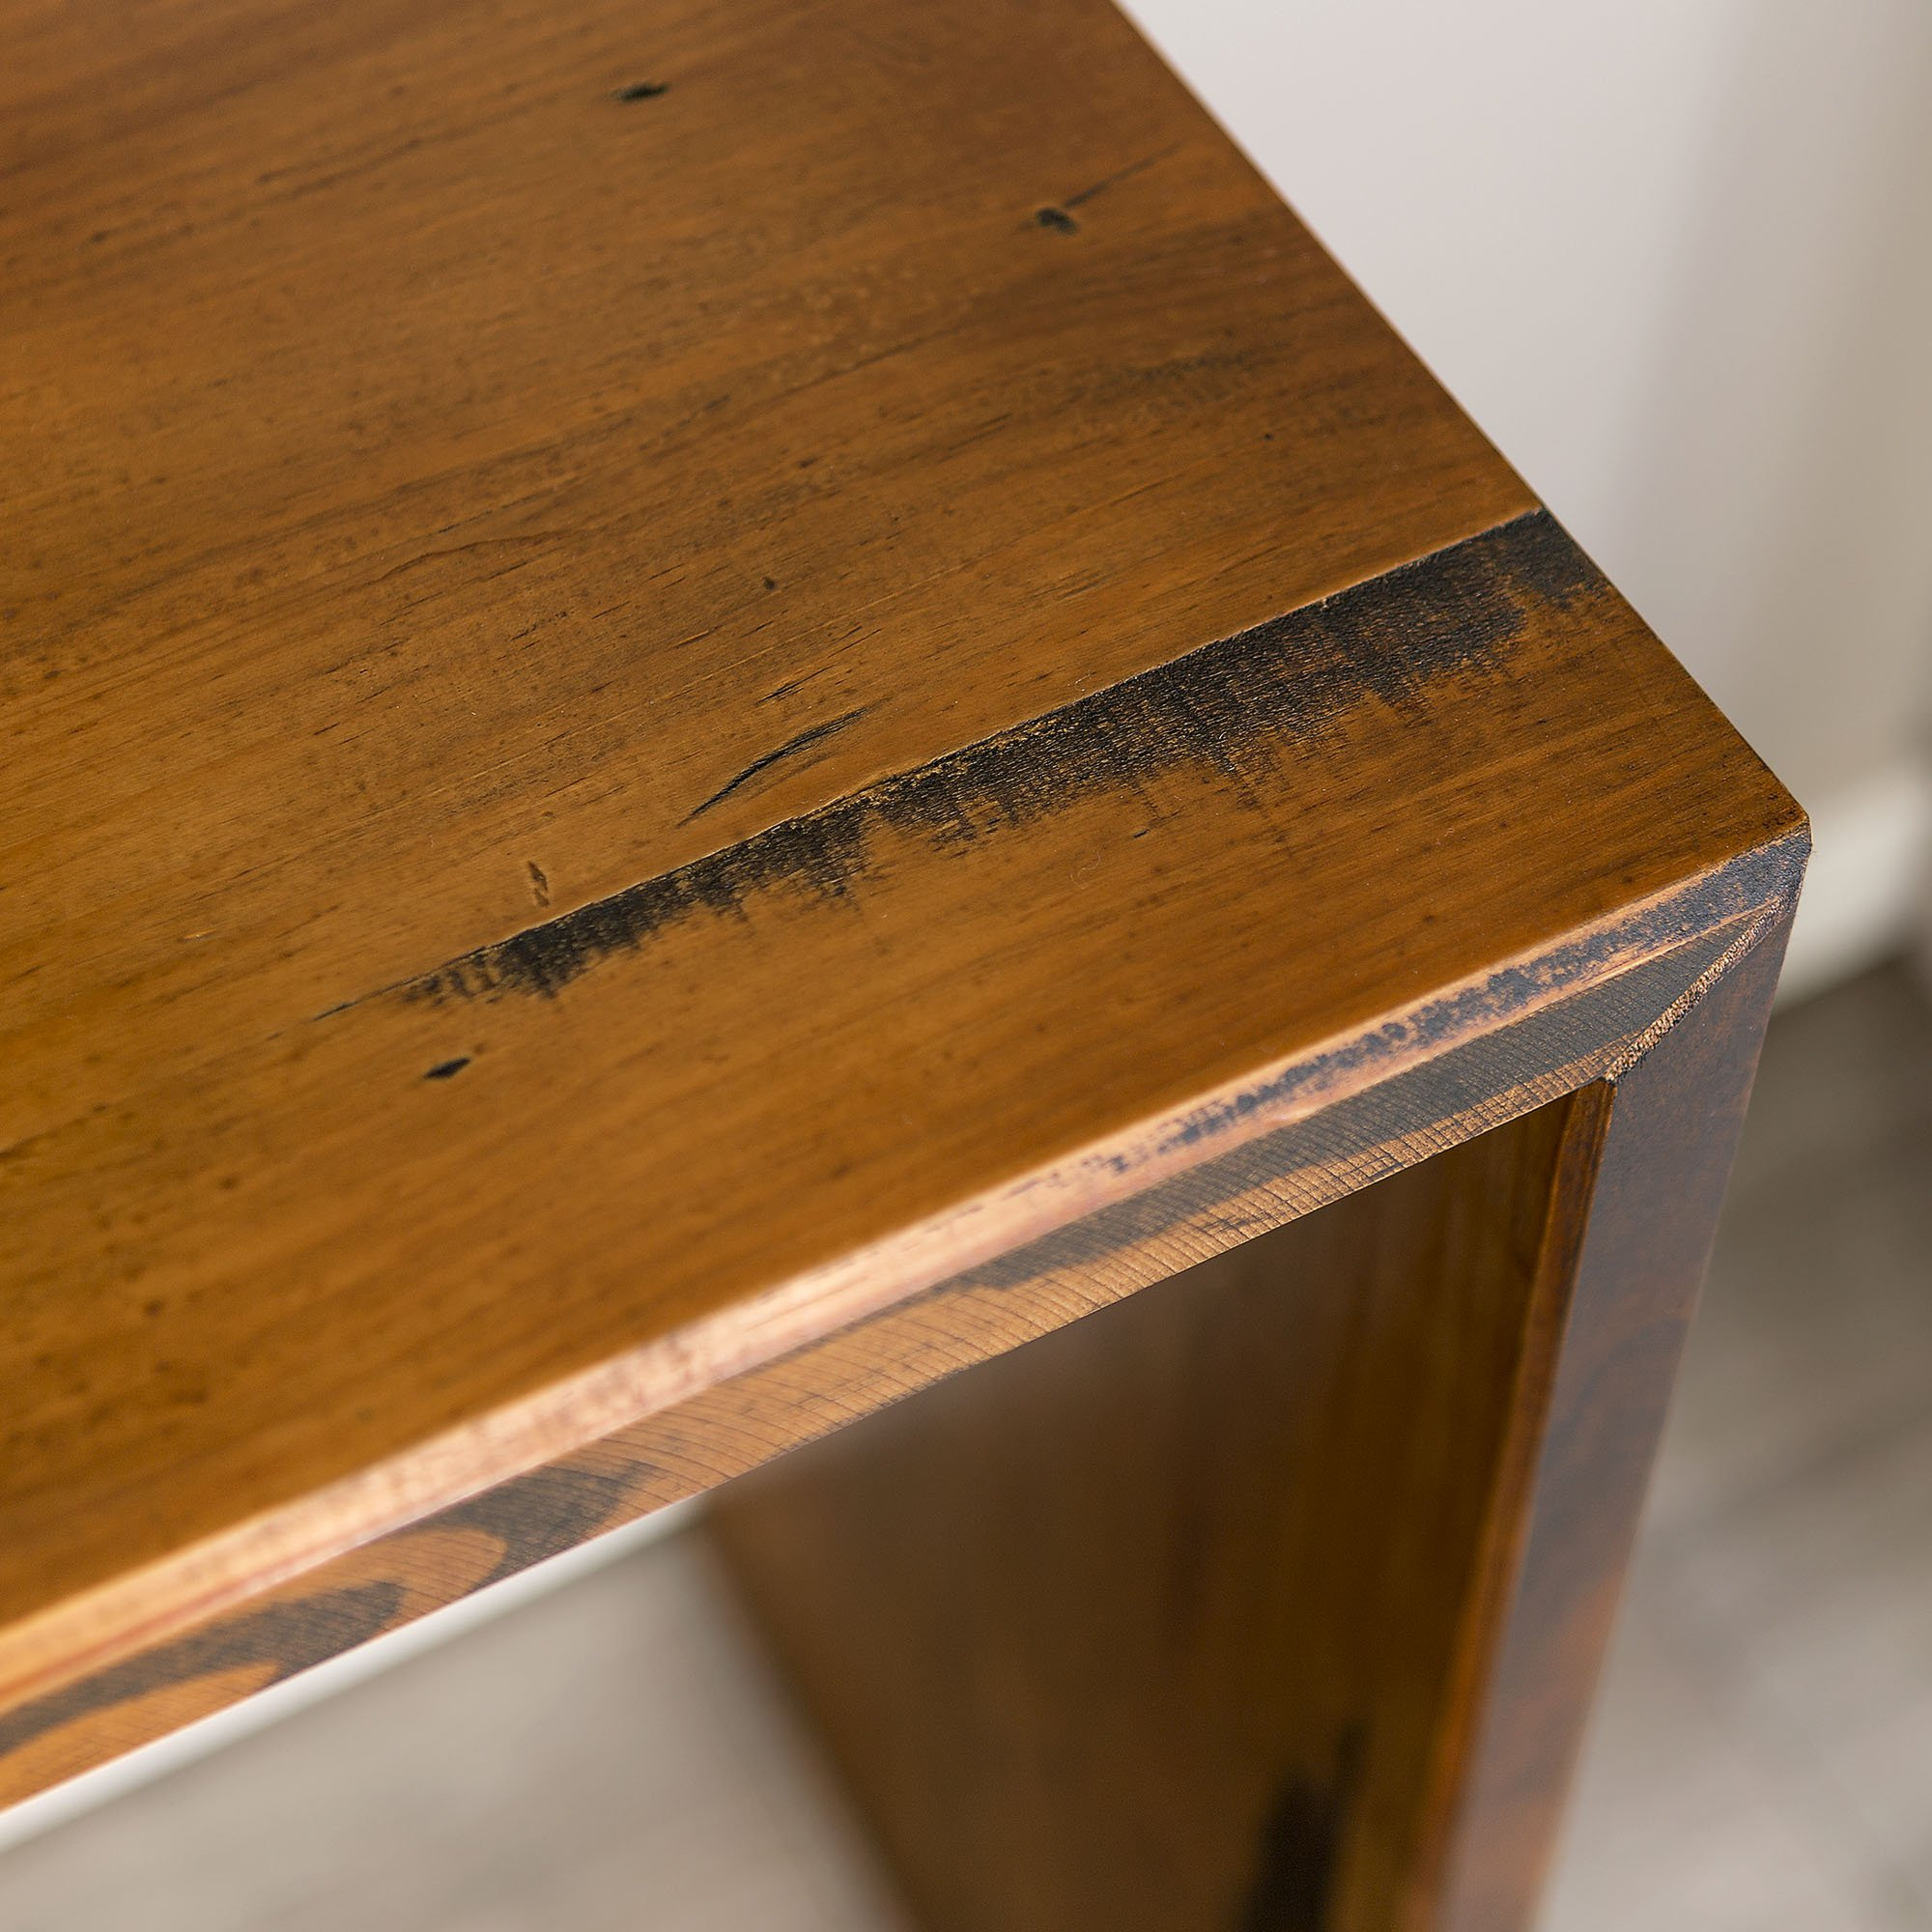 WE Furniture Reclaimed Wood Entry Table in Amber - 48'' by WE Furniture (Image #2)